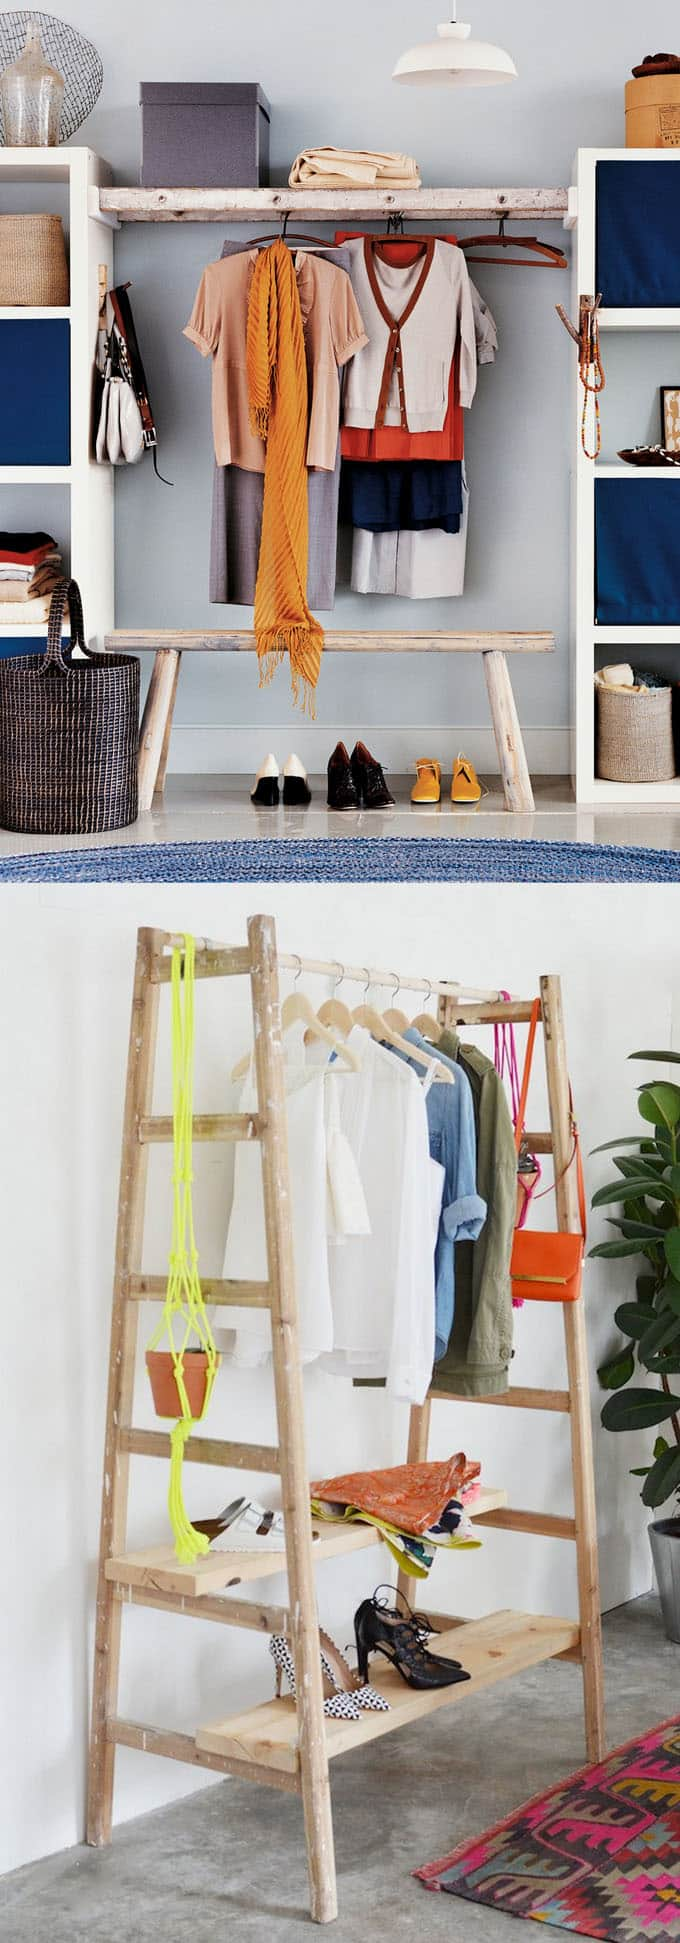 bohemian style home decor ideas using ladders as clothes hanging racks